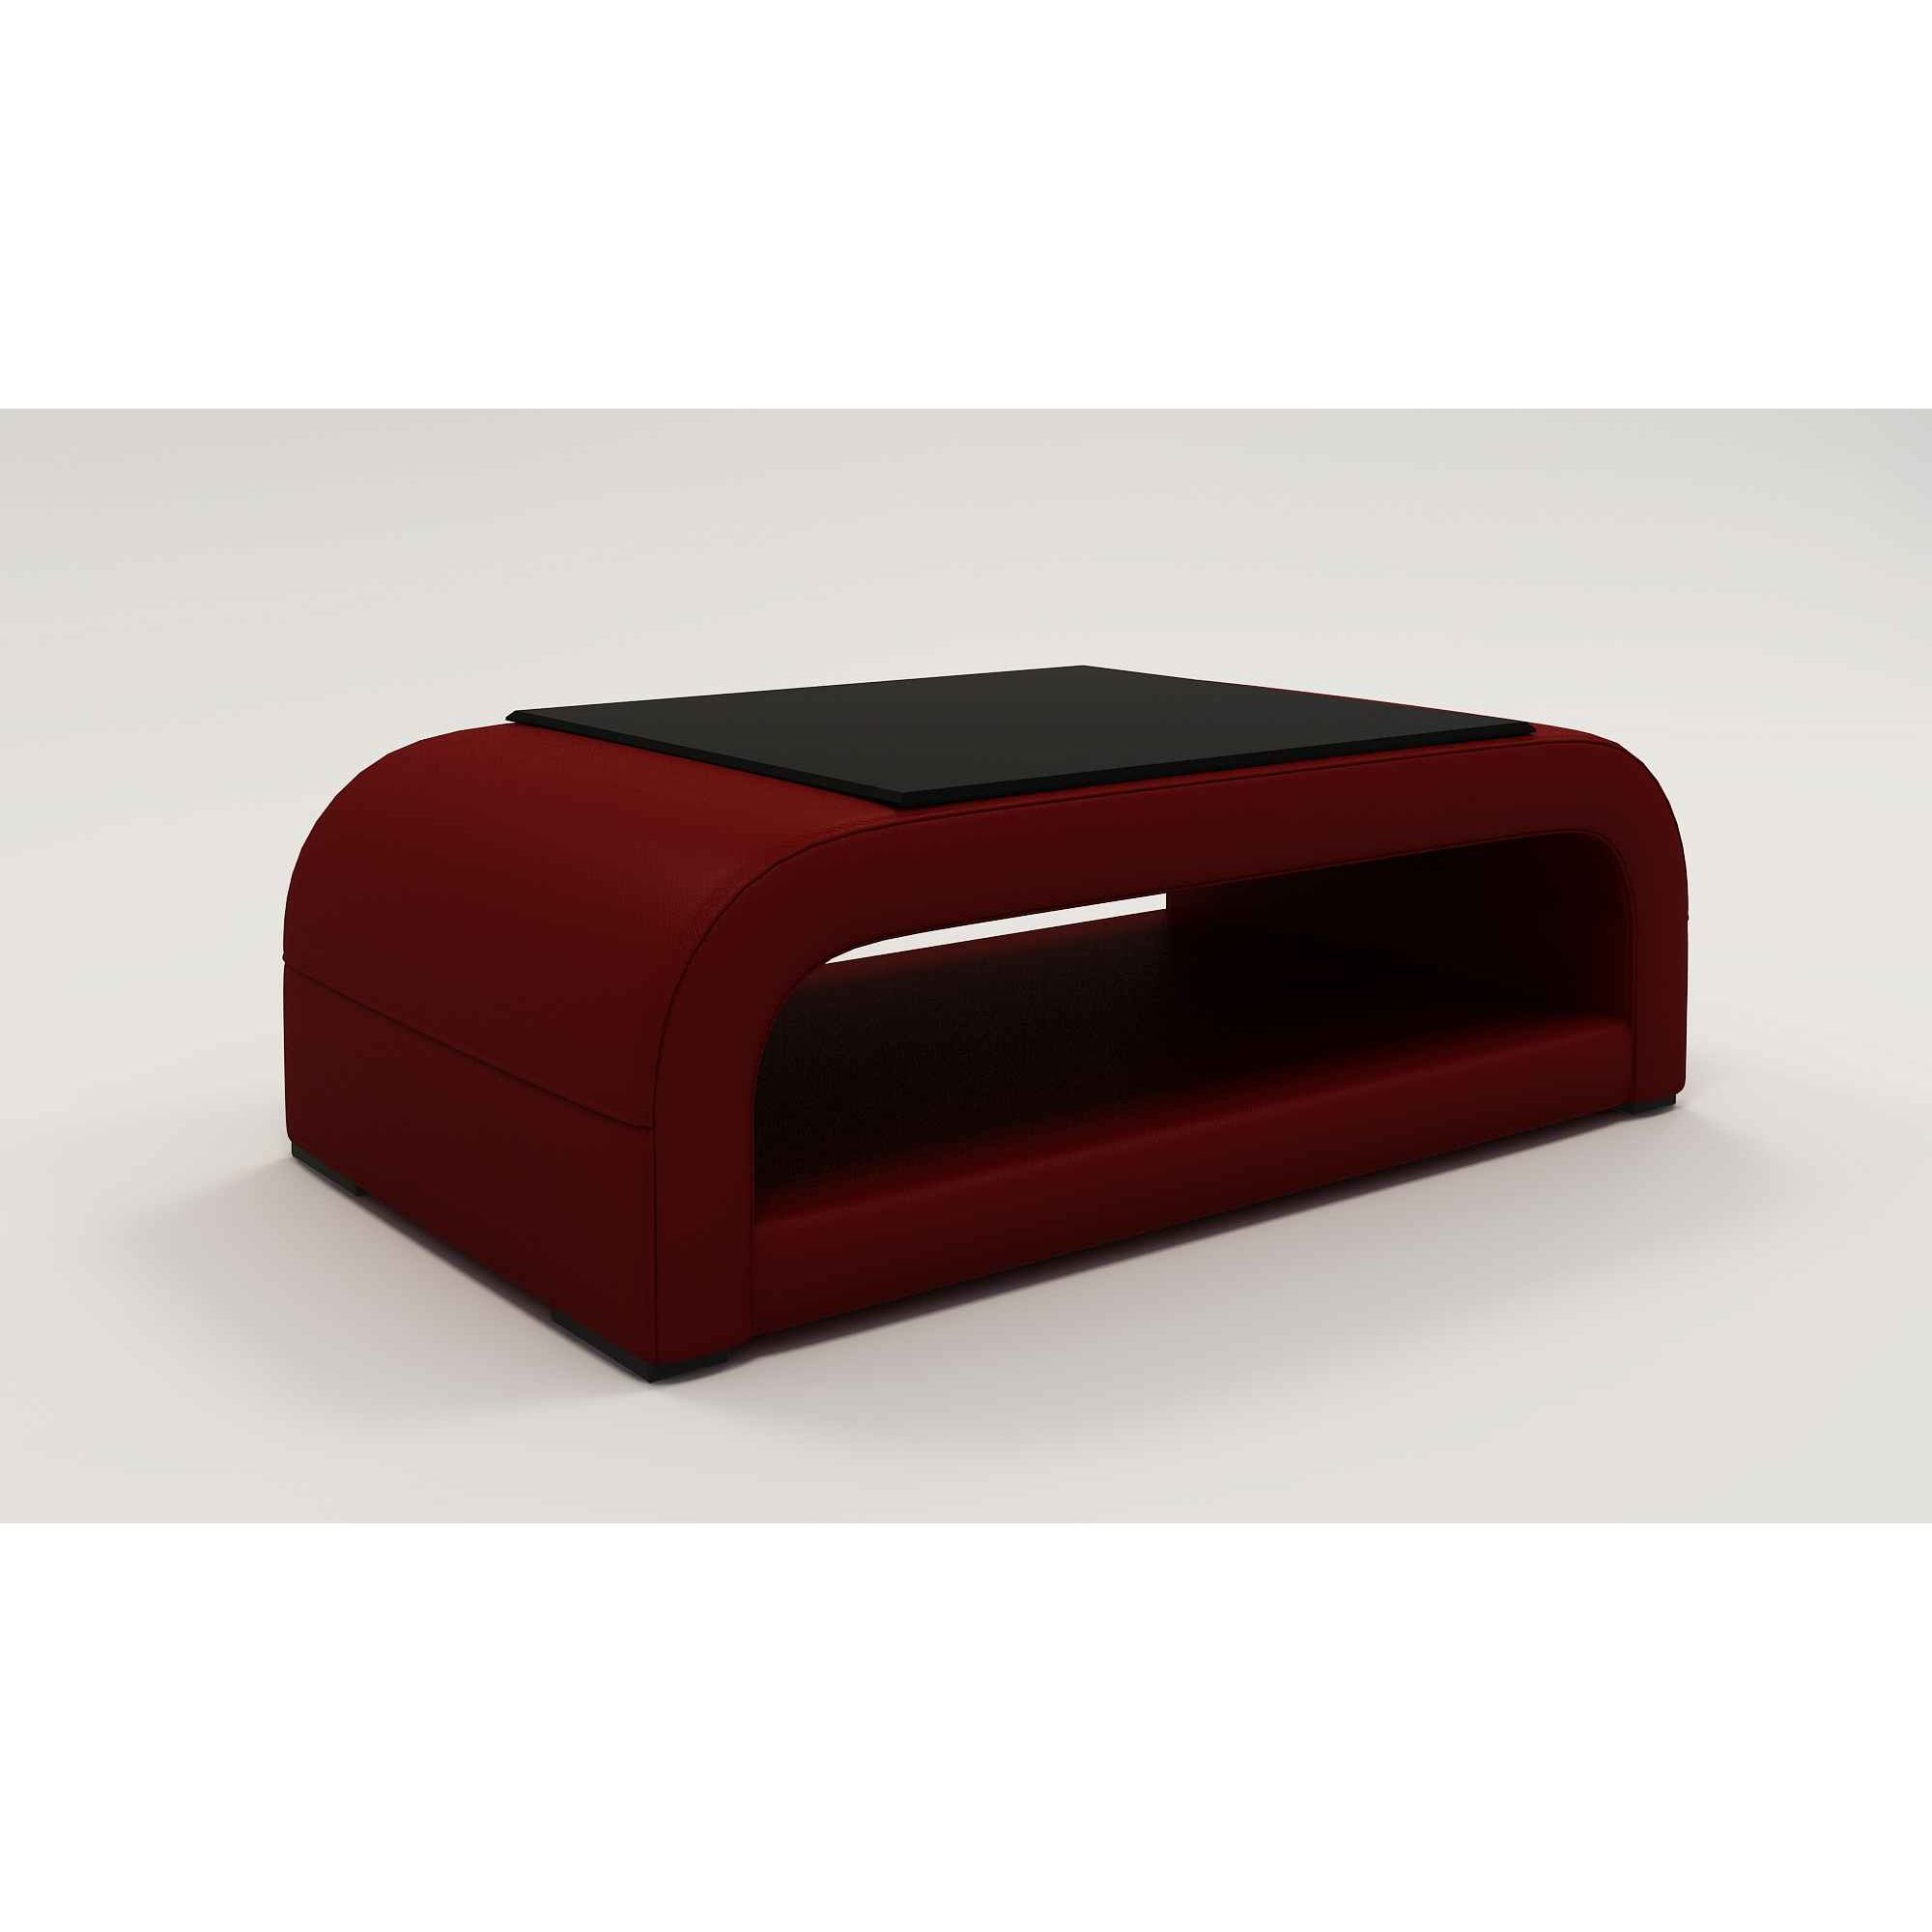 deco in paris table basse design rouge nelly nelly rouge tab basse. Black Bedroom Furniture Sets. Home Design Ideas